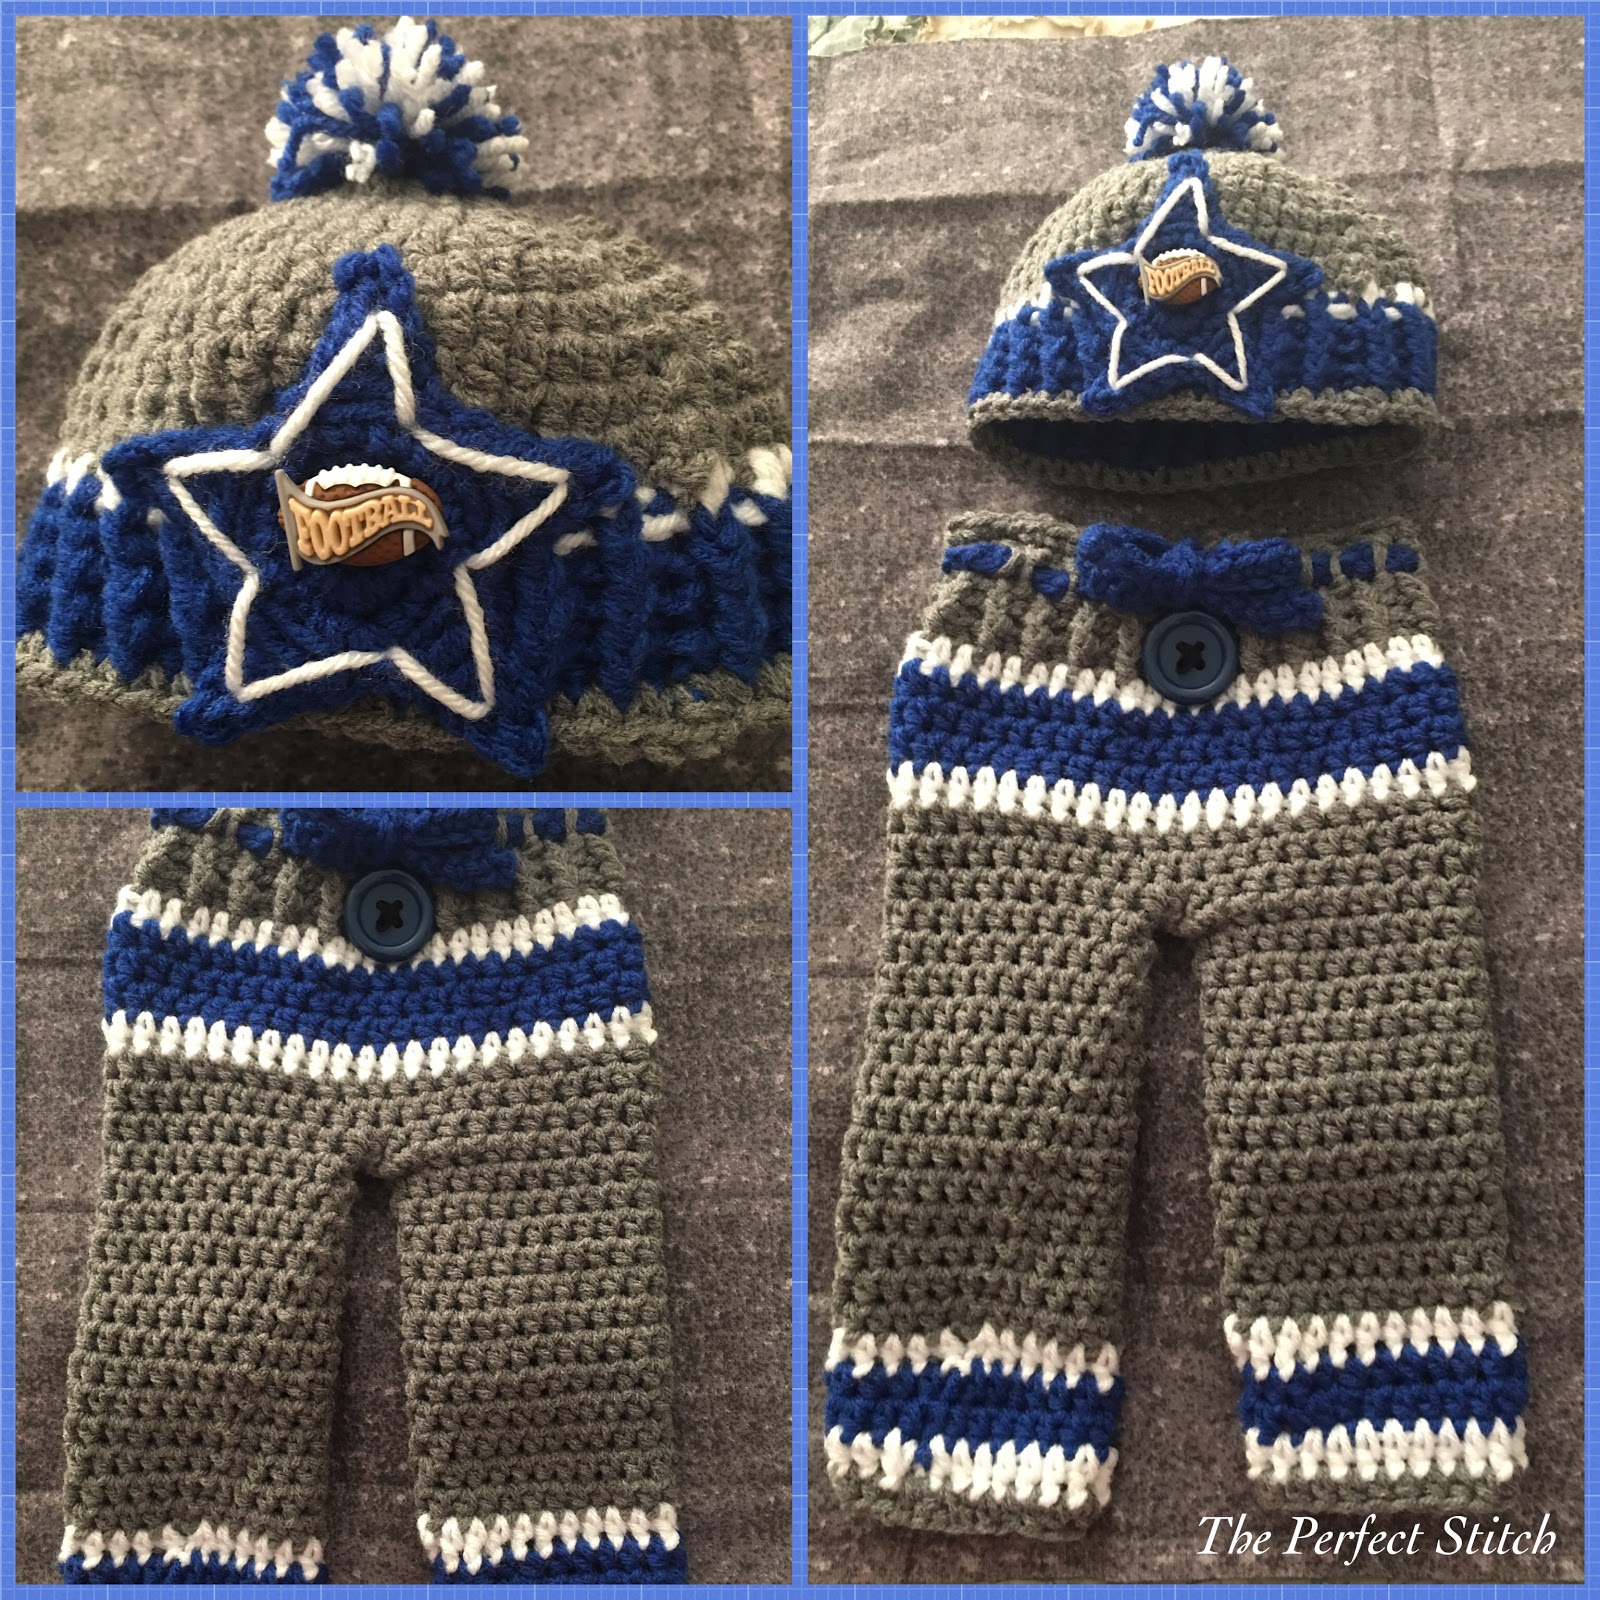 The Perfect Stitch Dallas Cowboys Hat Pant Set 0 3 Months